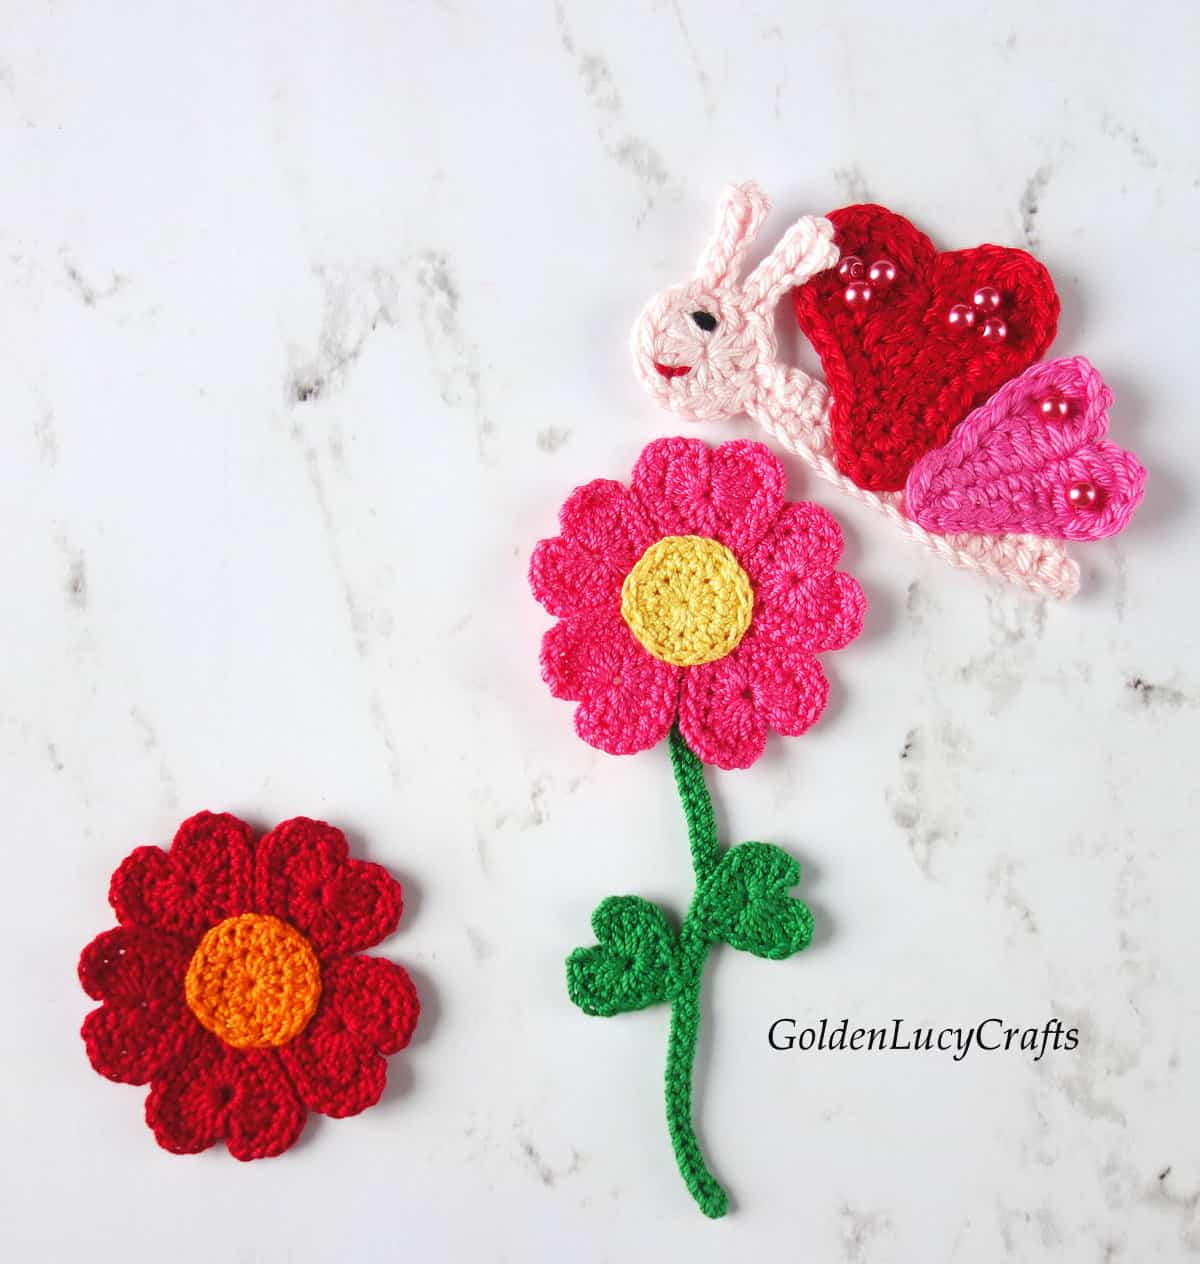 Crochet butterfly and flowers applique.